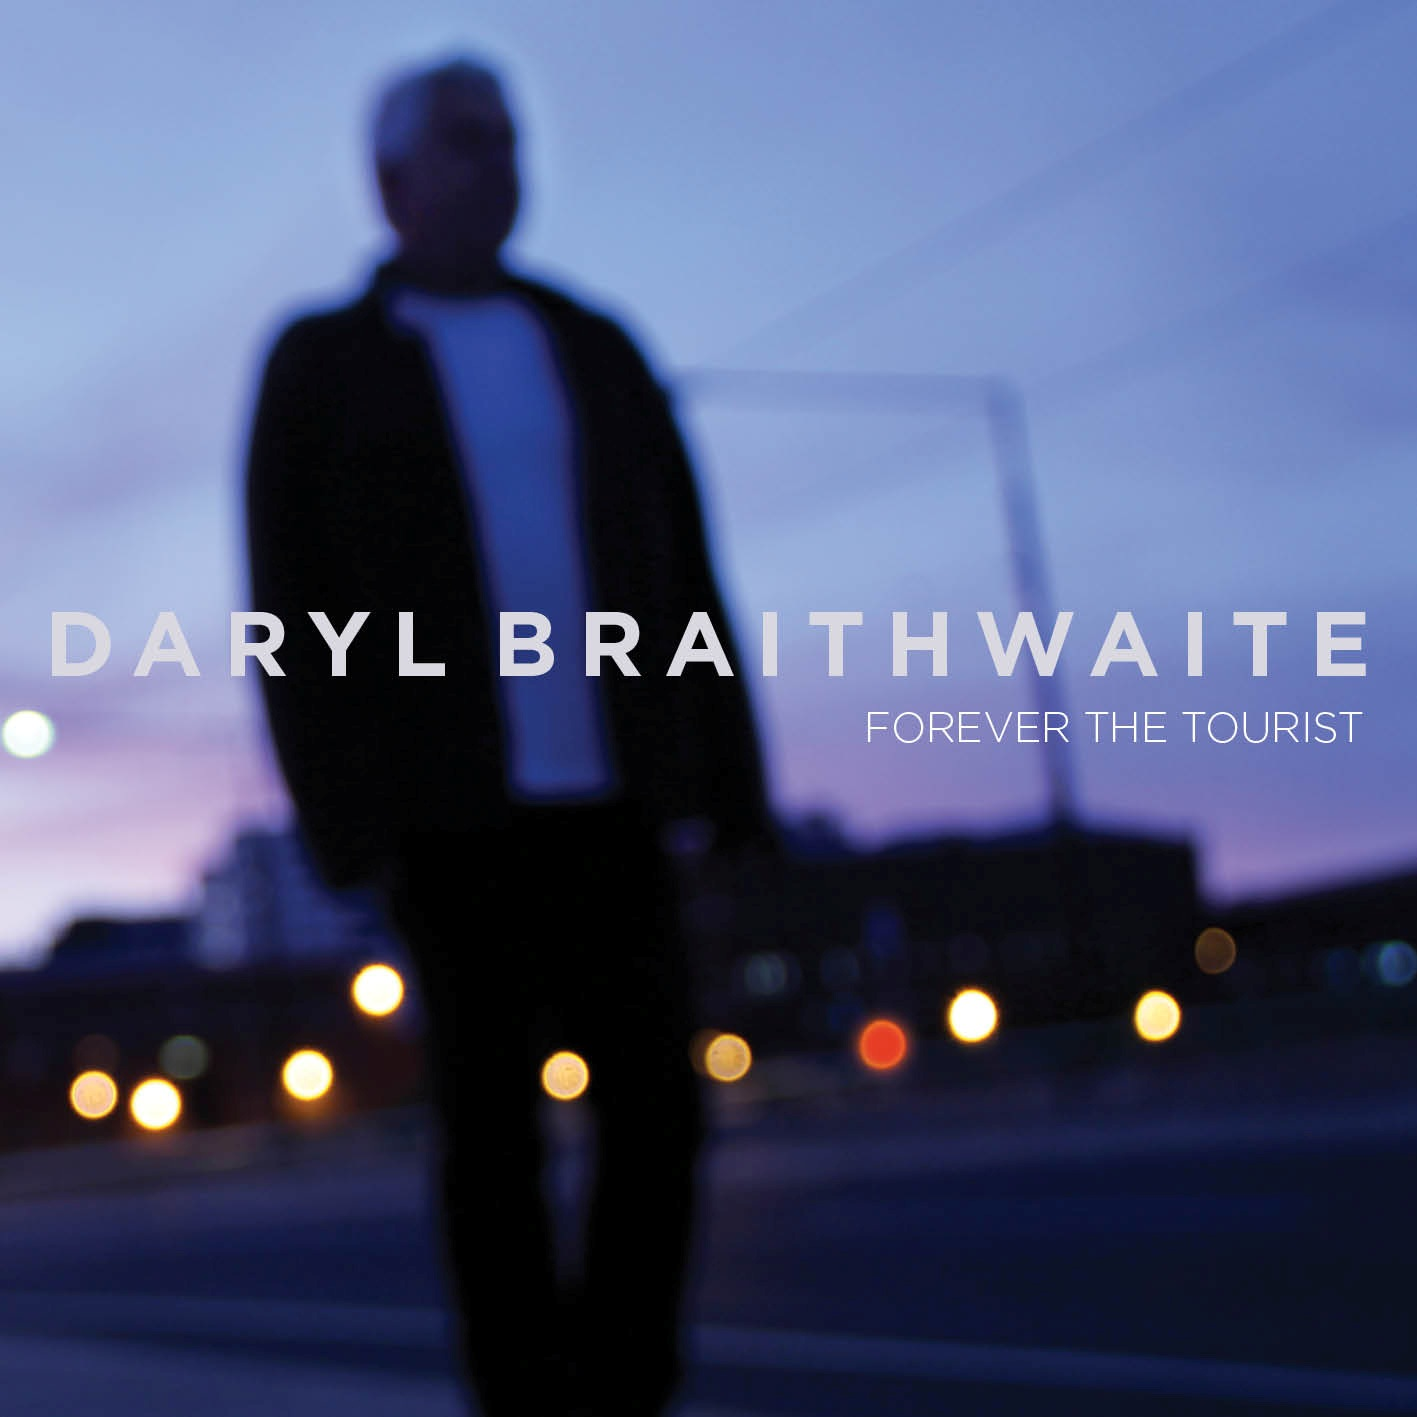 Australian music legend DARYL BRAITHWAITE announces New Mini Album FOREVER THE TOURIST to be released  4th October, 2013